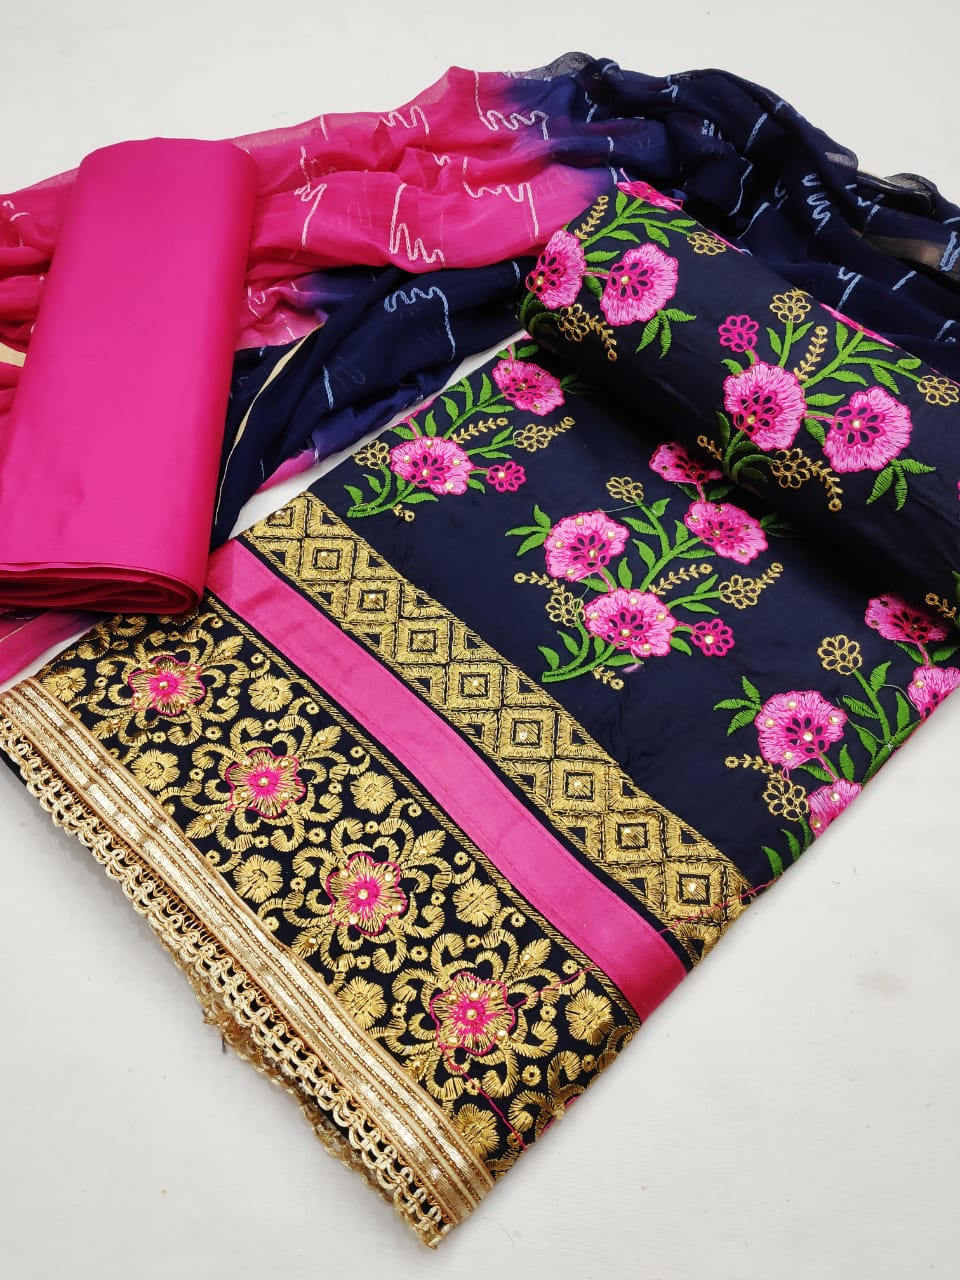 Thankar M D Festive  Wear Pure Cotton With Embroidery Work Dress Material Catalog at Wholesale rate